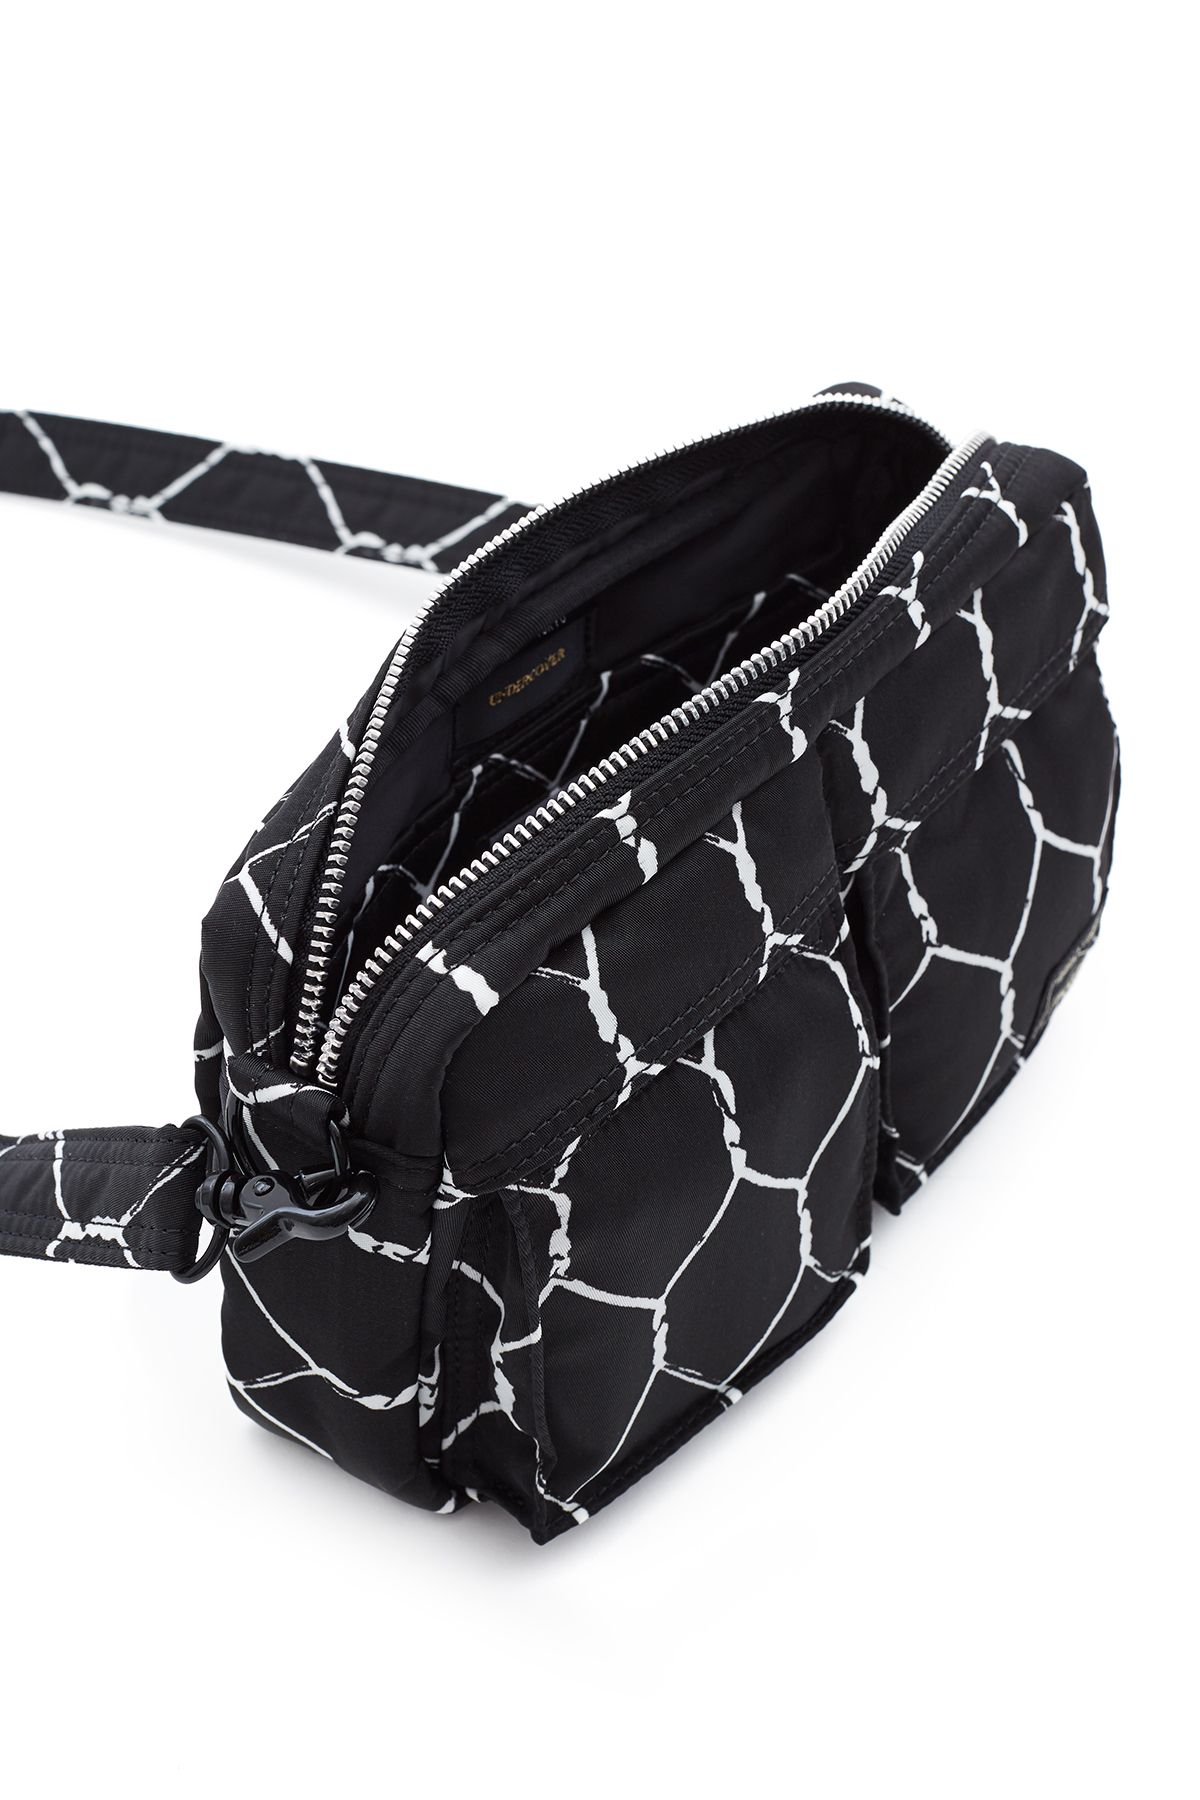 Wire fence print:Top zipper closure:Two front buttoned pockets with ...